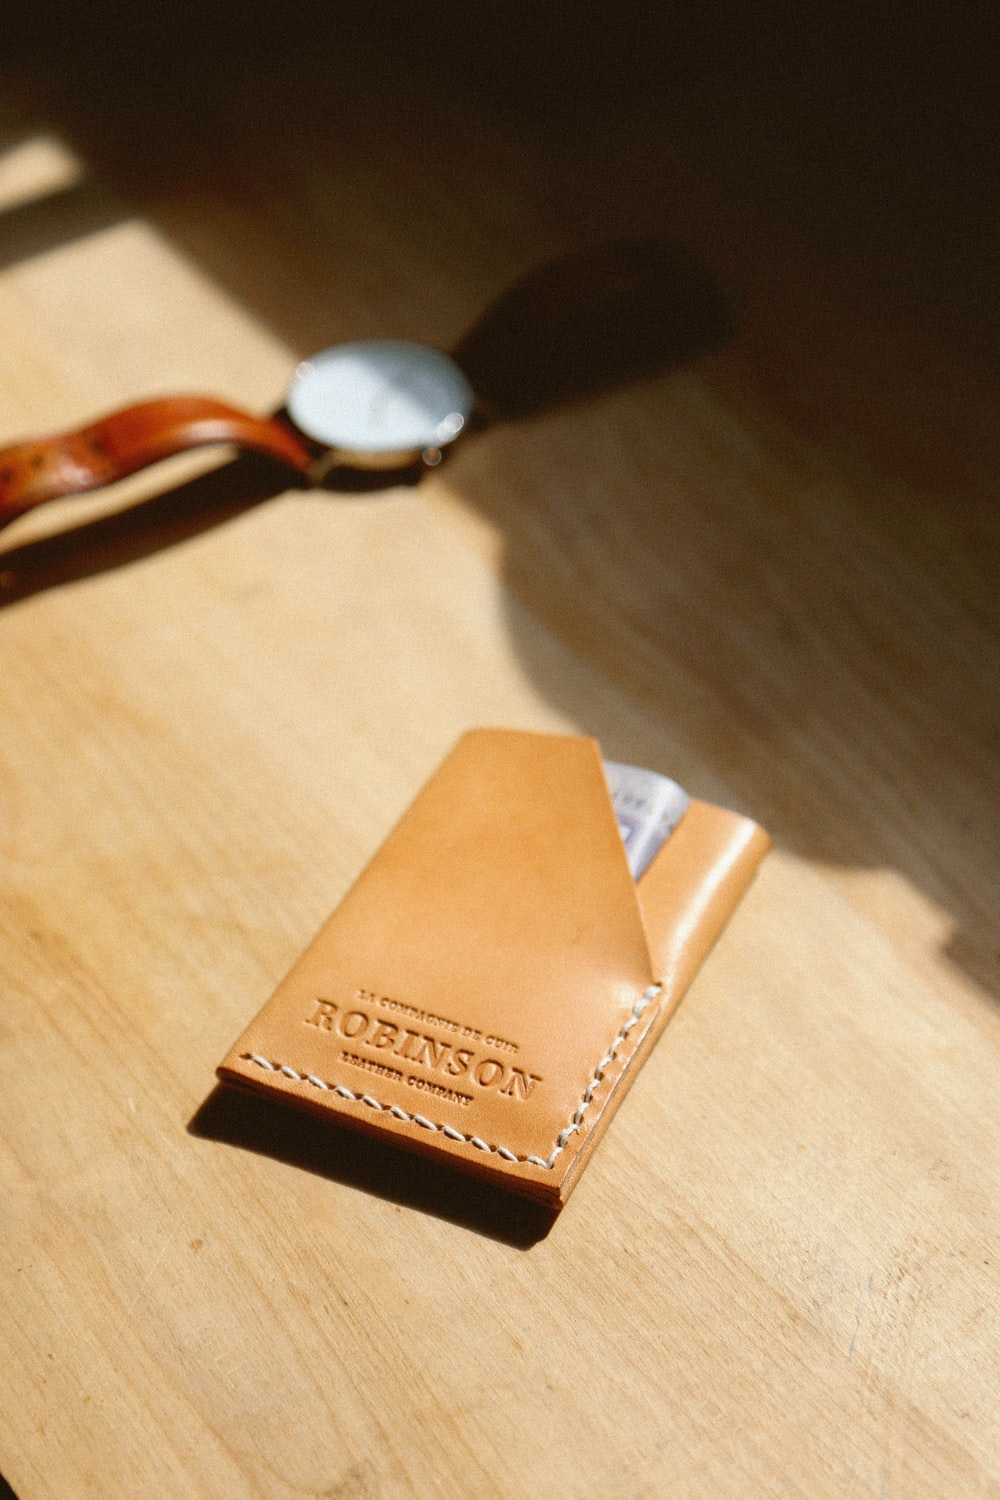 brown leather wallet beside watch on table